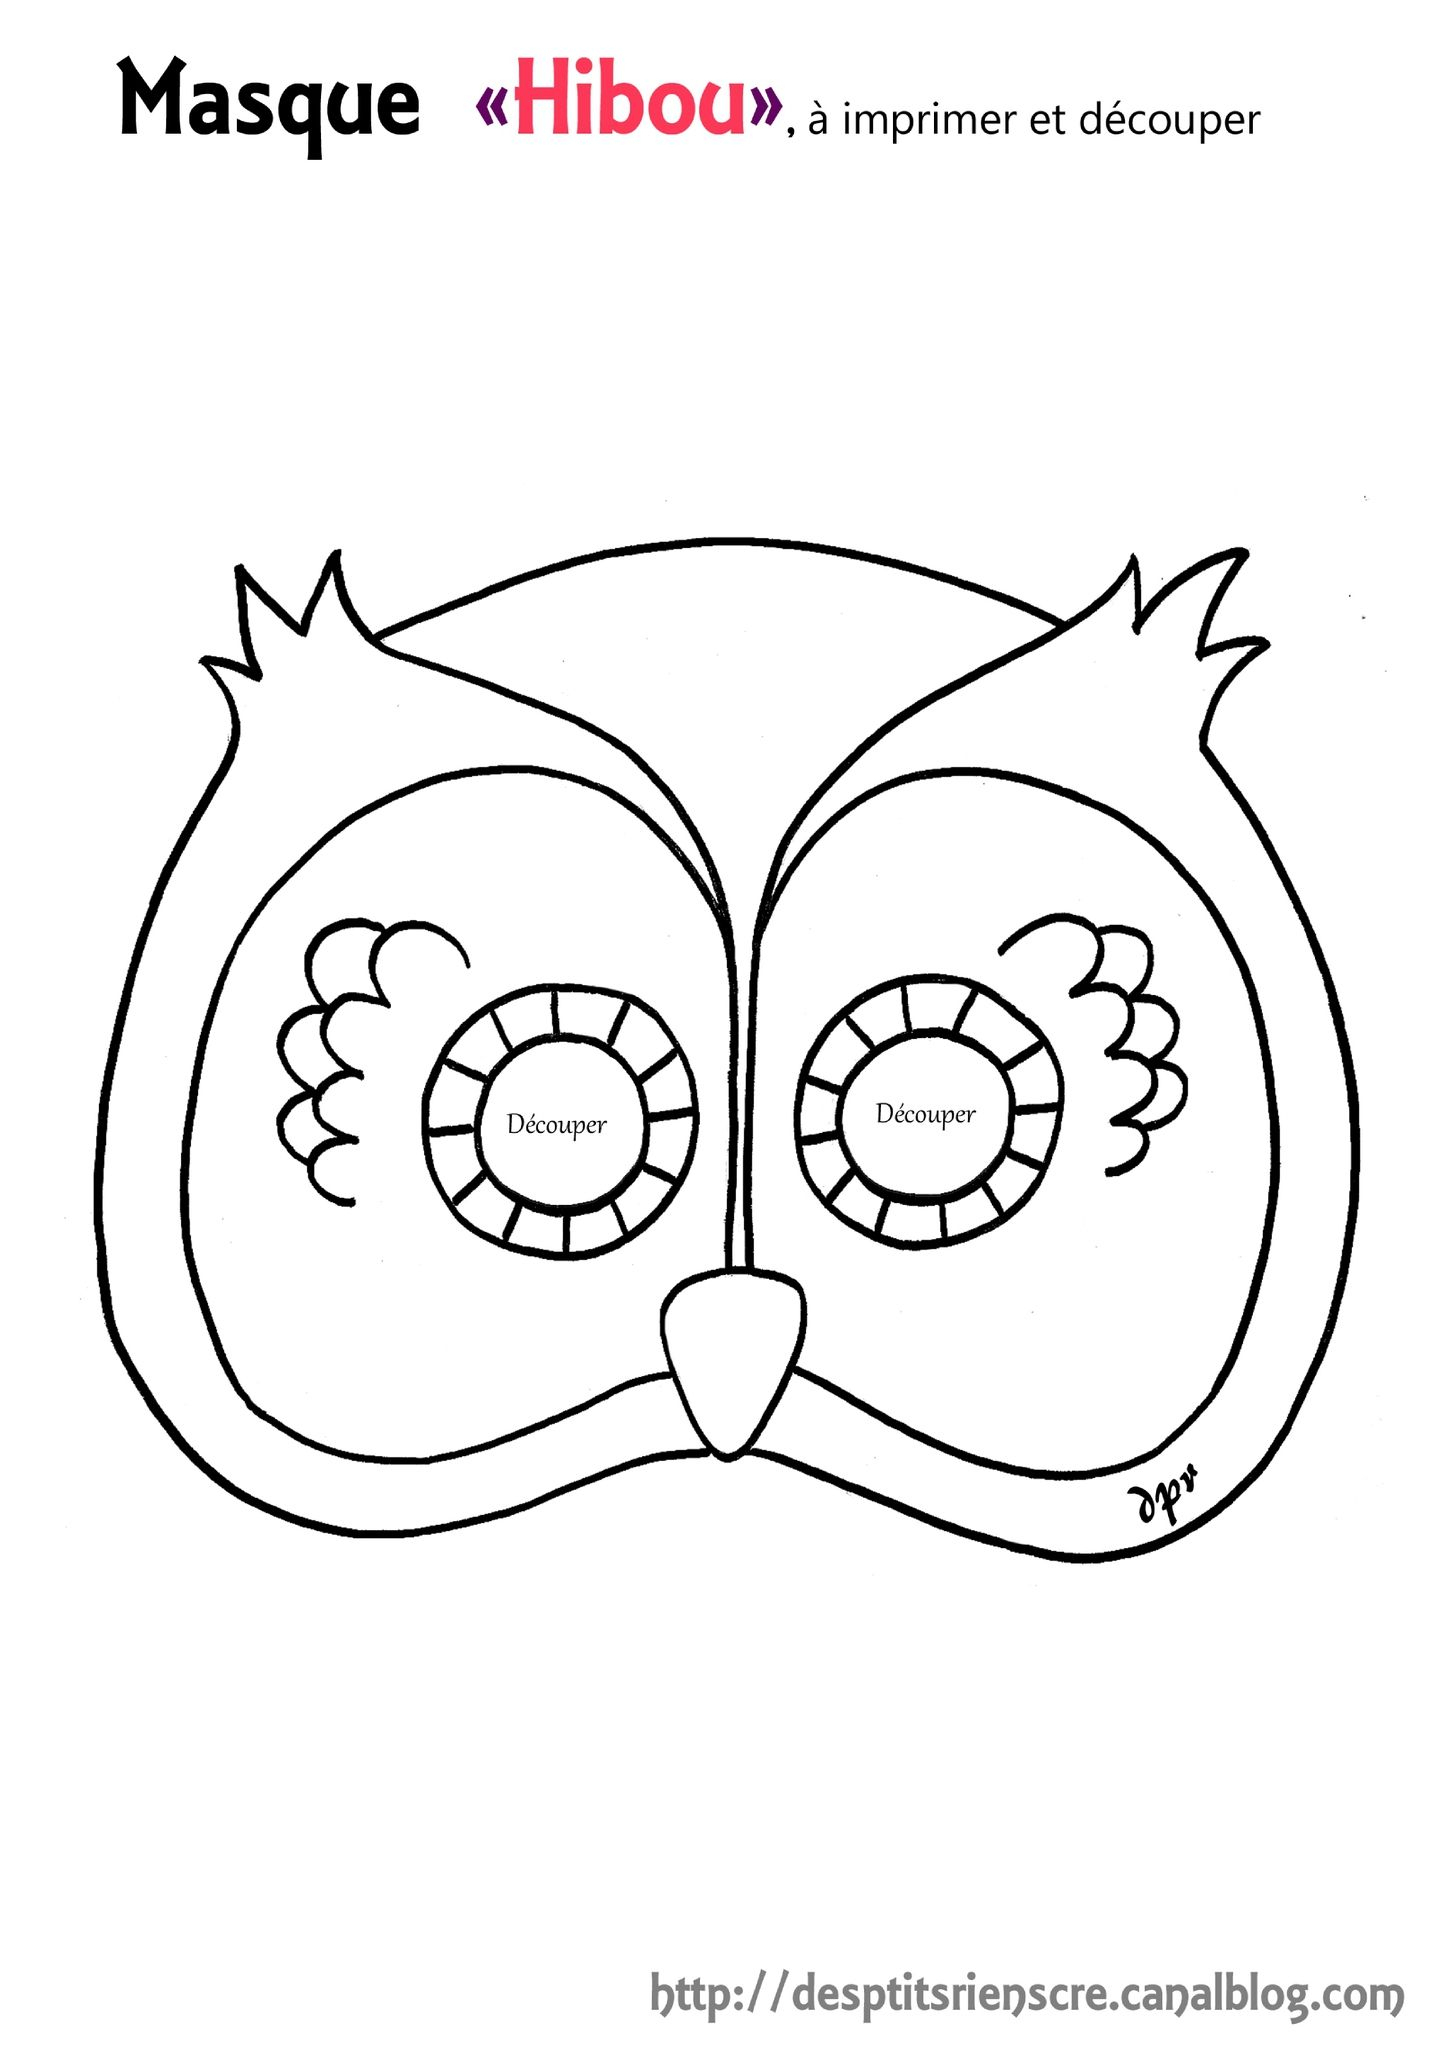 Masque Hibou Copie À Colorier | Masque Hibou, Coloriage à Masque Loup A Colorier